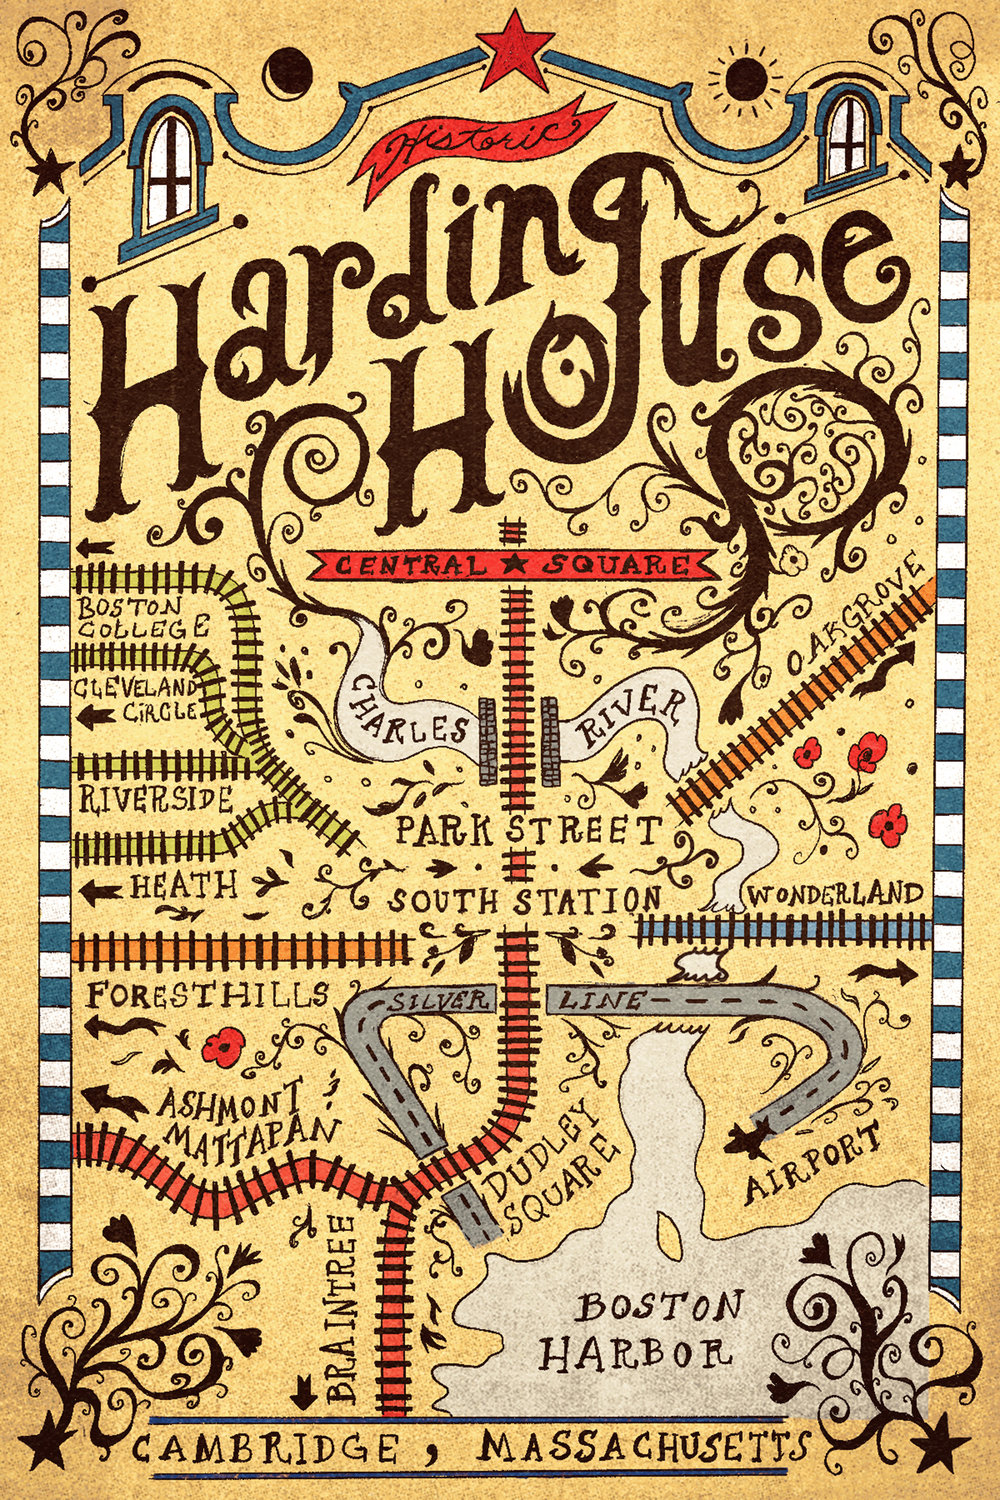 Dom_Civiello_Harding_House_Postcard_Web.jpg